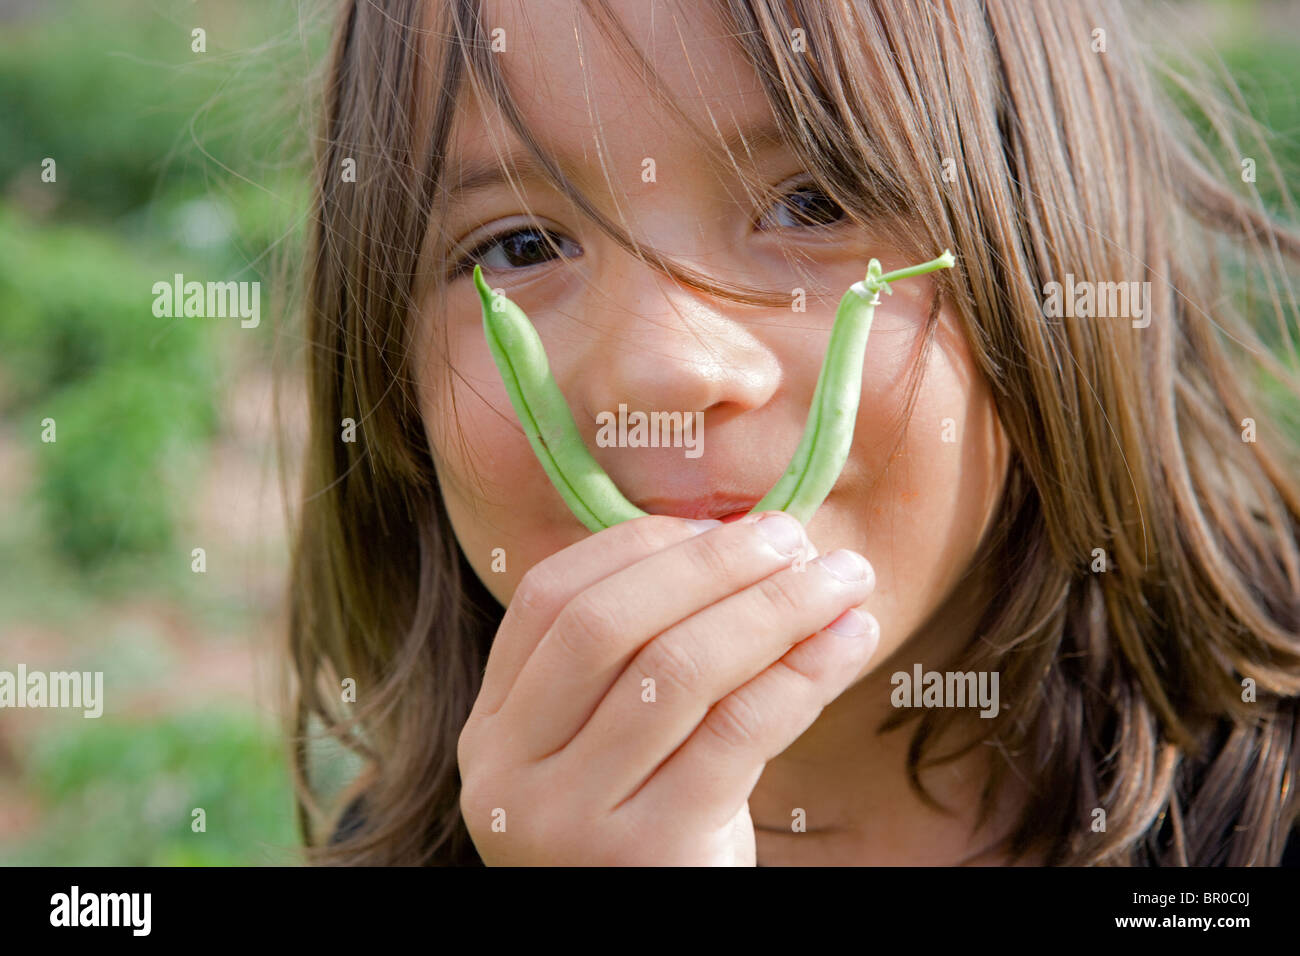 eleven year old picks a green bean and holds it up to his face as a moustache being silly - Stock Image